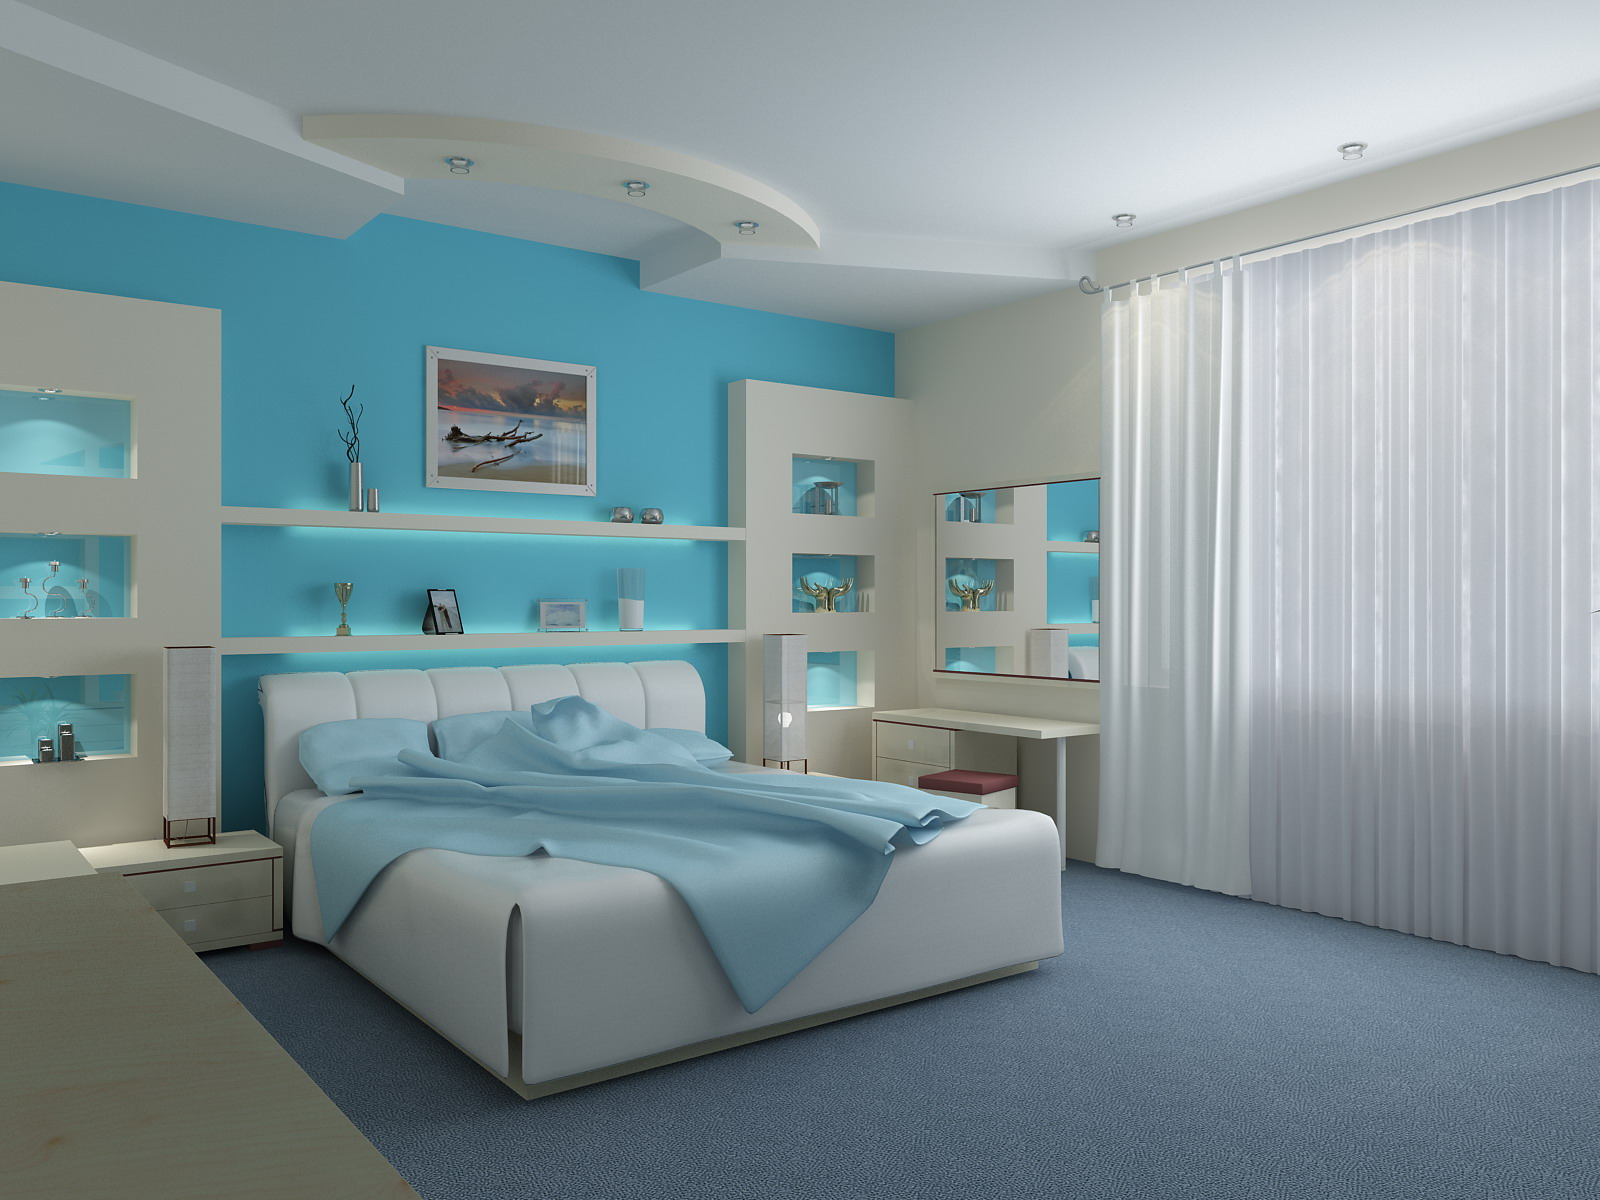 Coastal living bedroom furniture popular interior house ideas Blue beach bedroom ideas